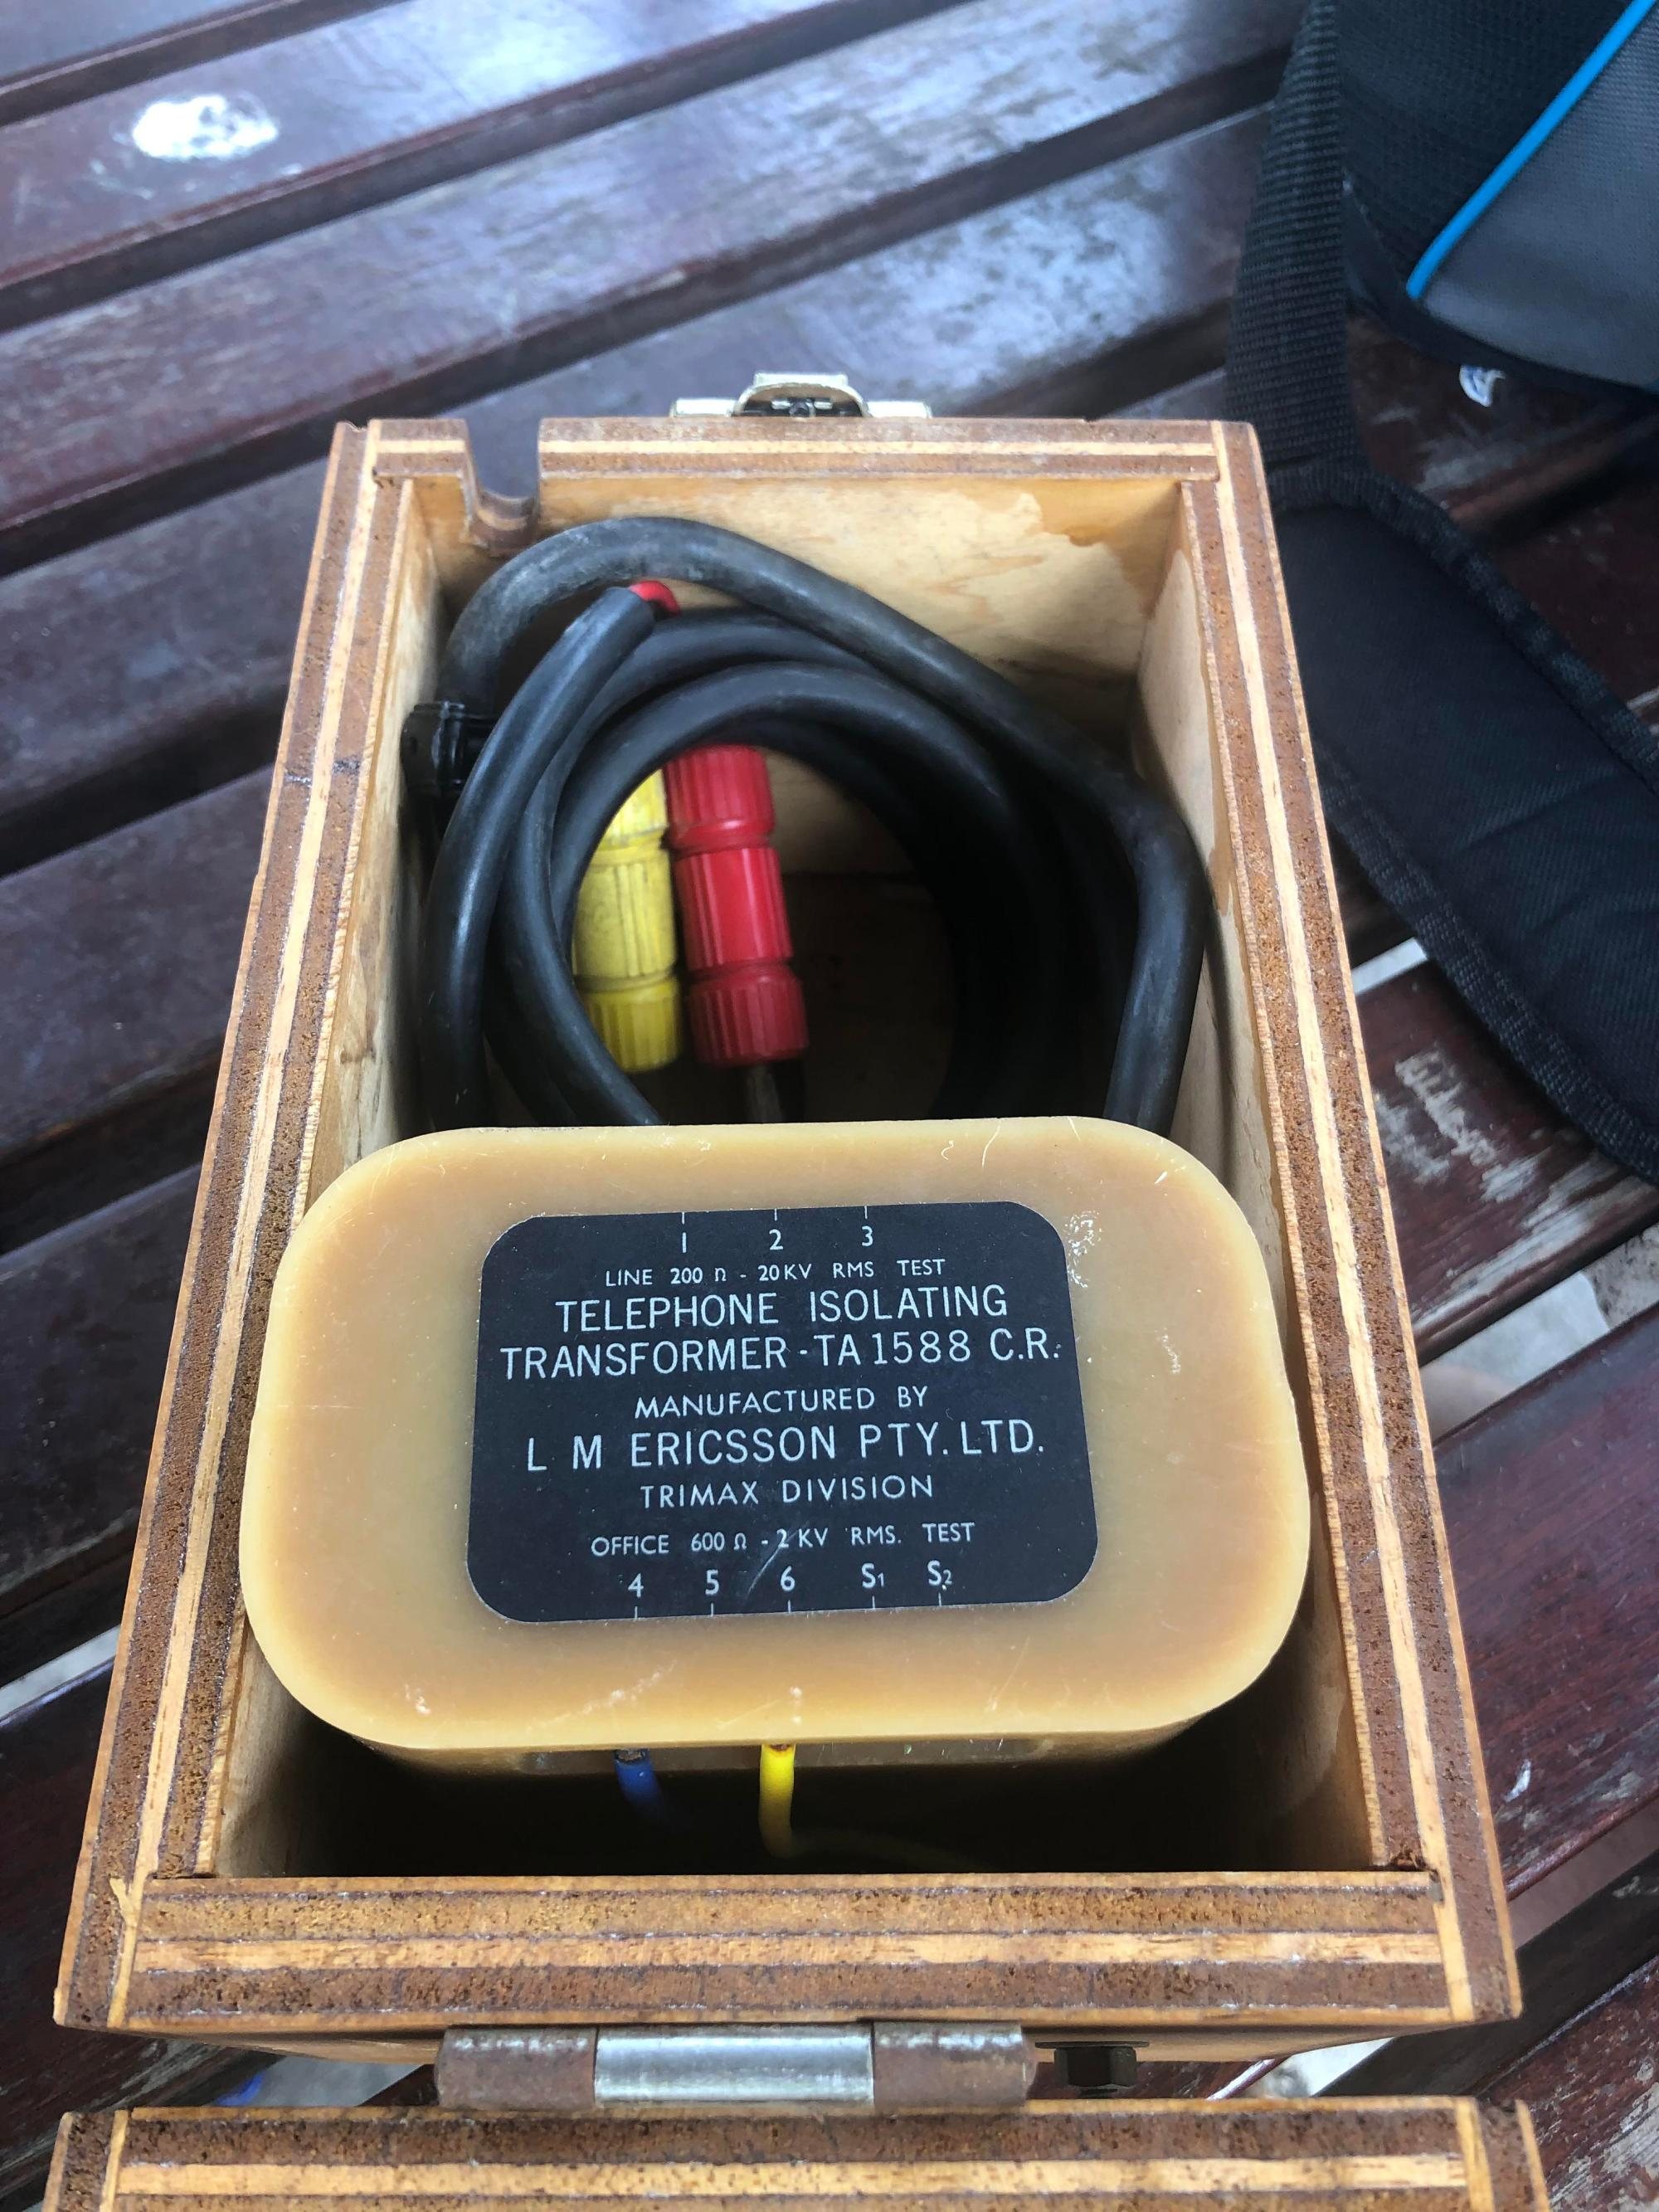 hight resolution of i found this today i believe it is a testing kit of some sort for old phone lines but can anyone shed more information on it